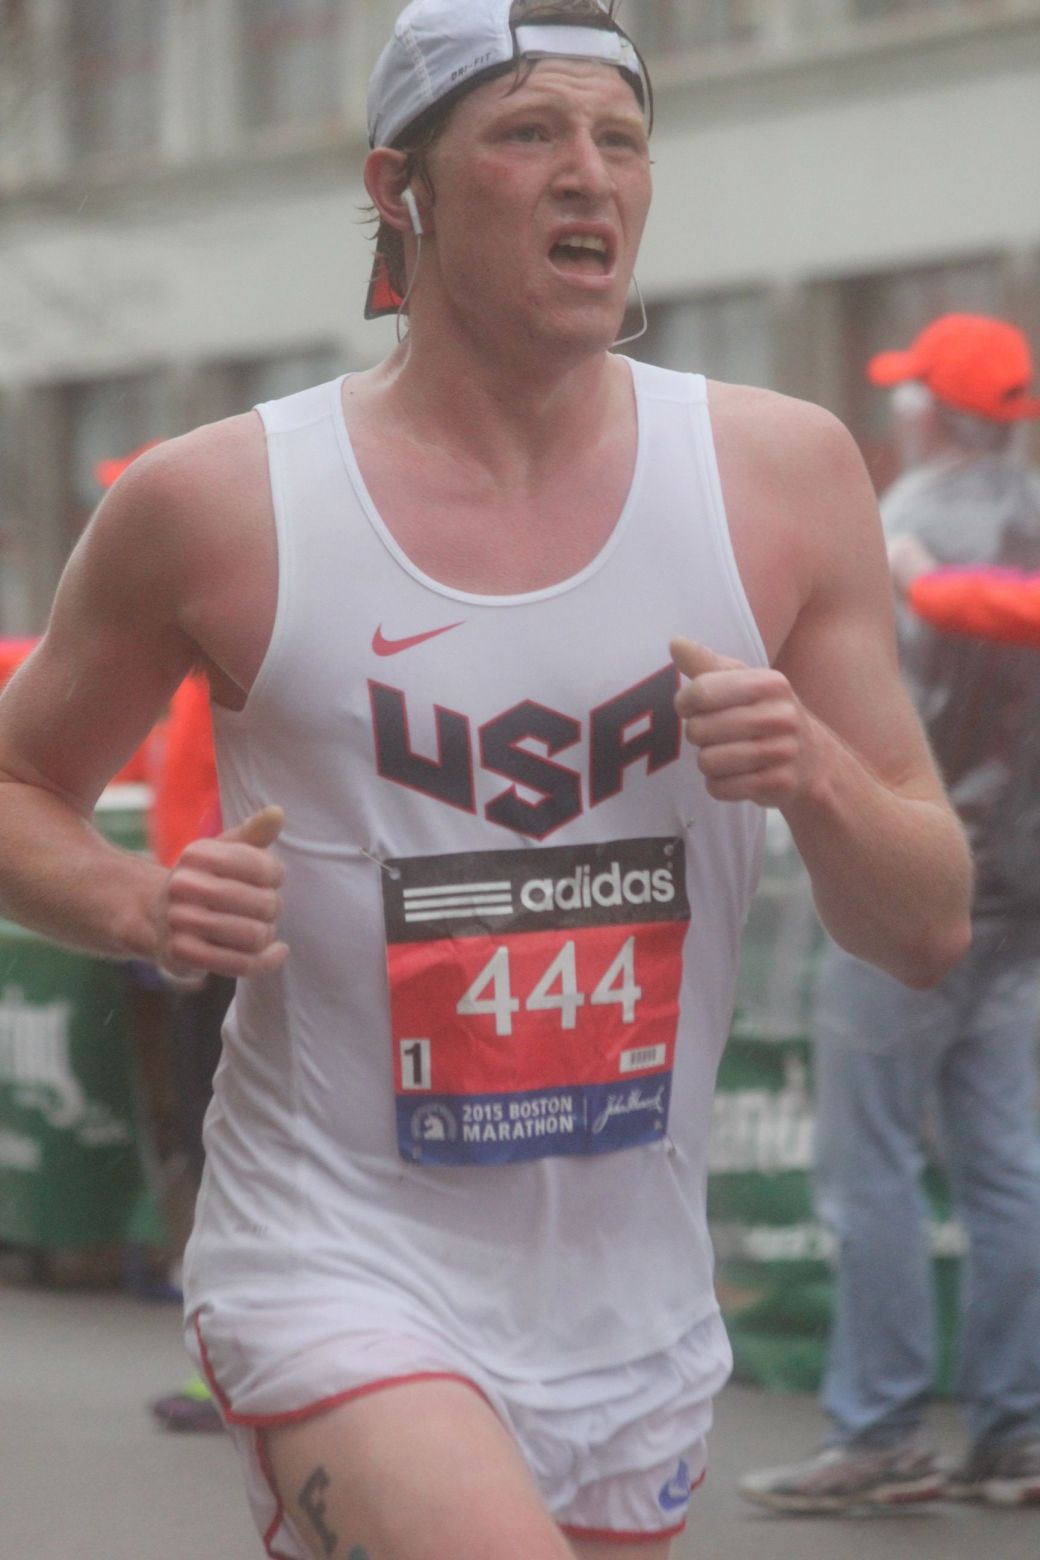 boston marathon april 20 2015 racer number 444